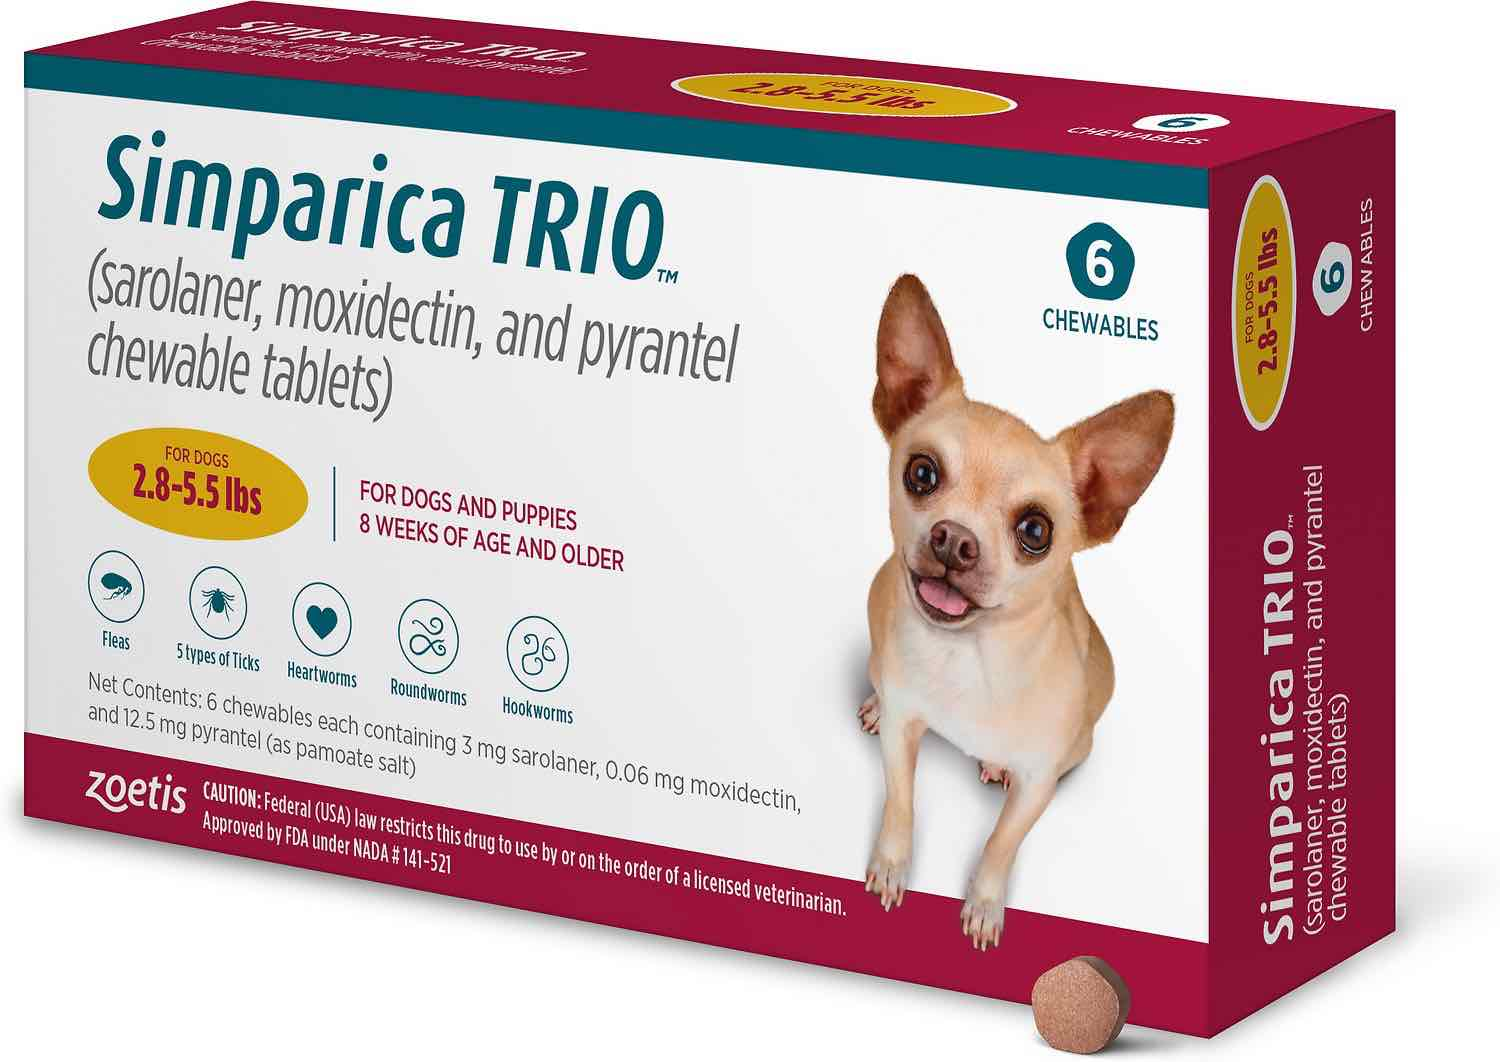 Simparica Trio 6 chewables for dogs 2.8-5.5 lbs (Gold) 1